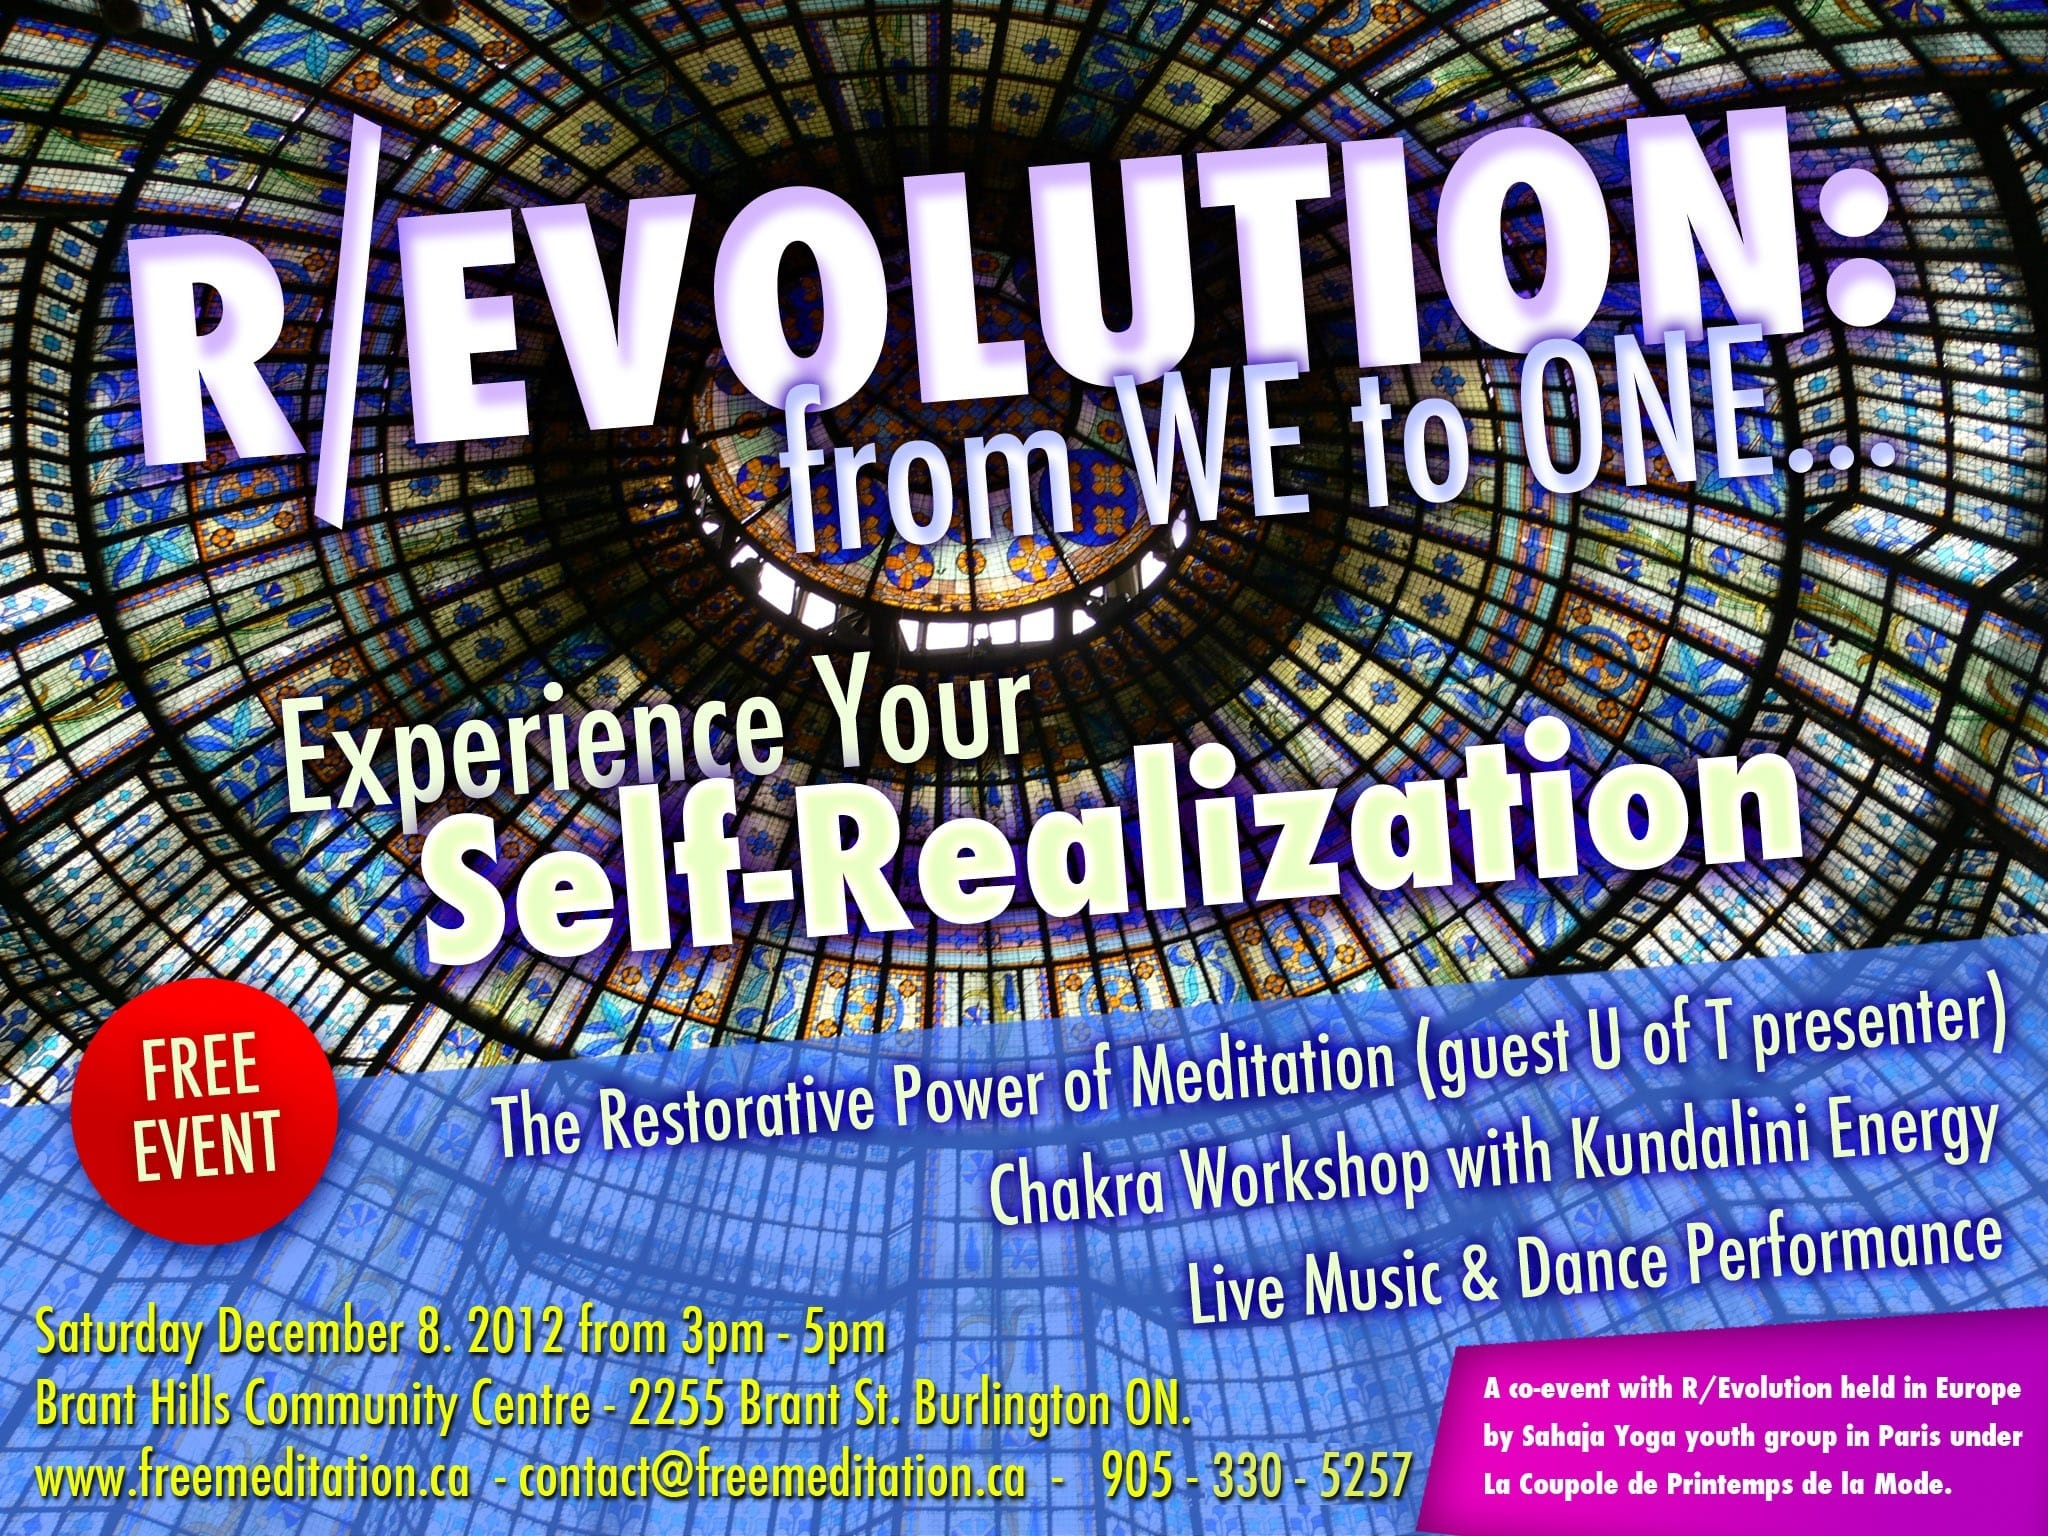 Join the R/Evolution in Ontario – FREE Public Event on December 8th, 2012